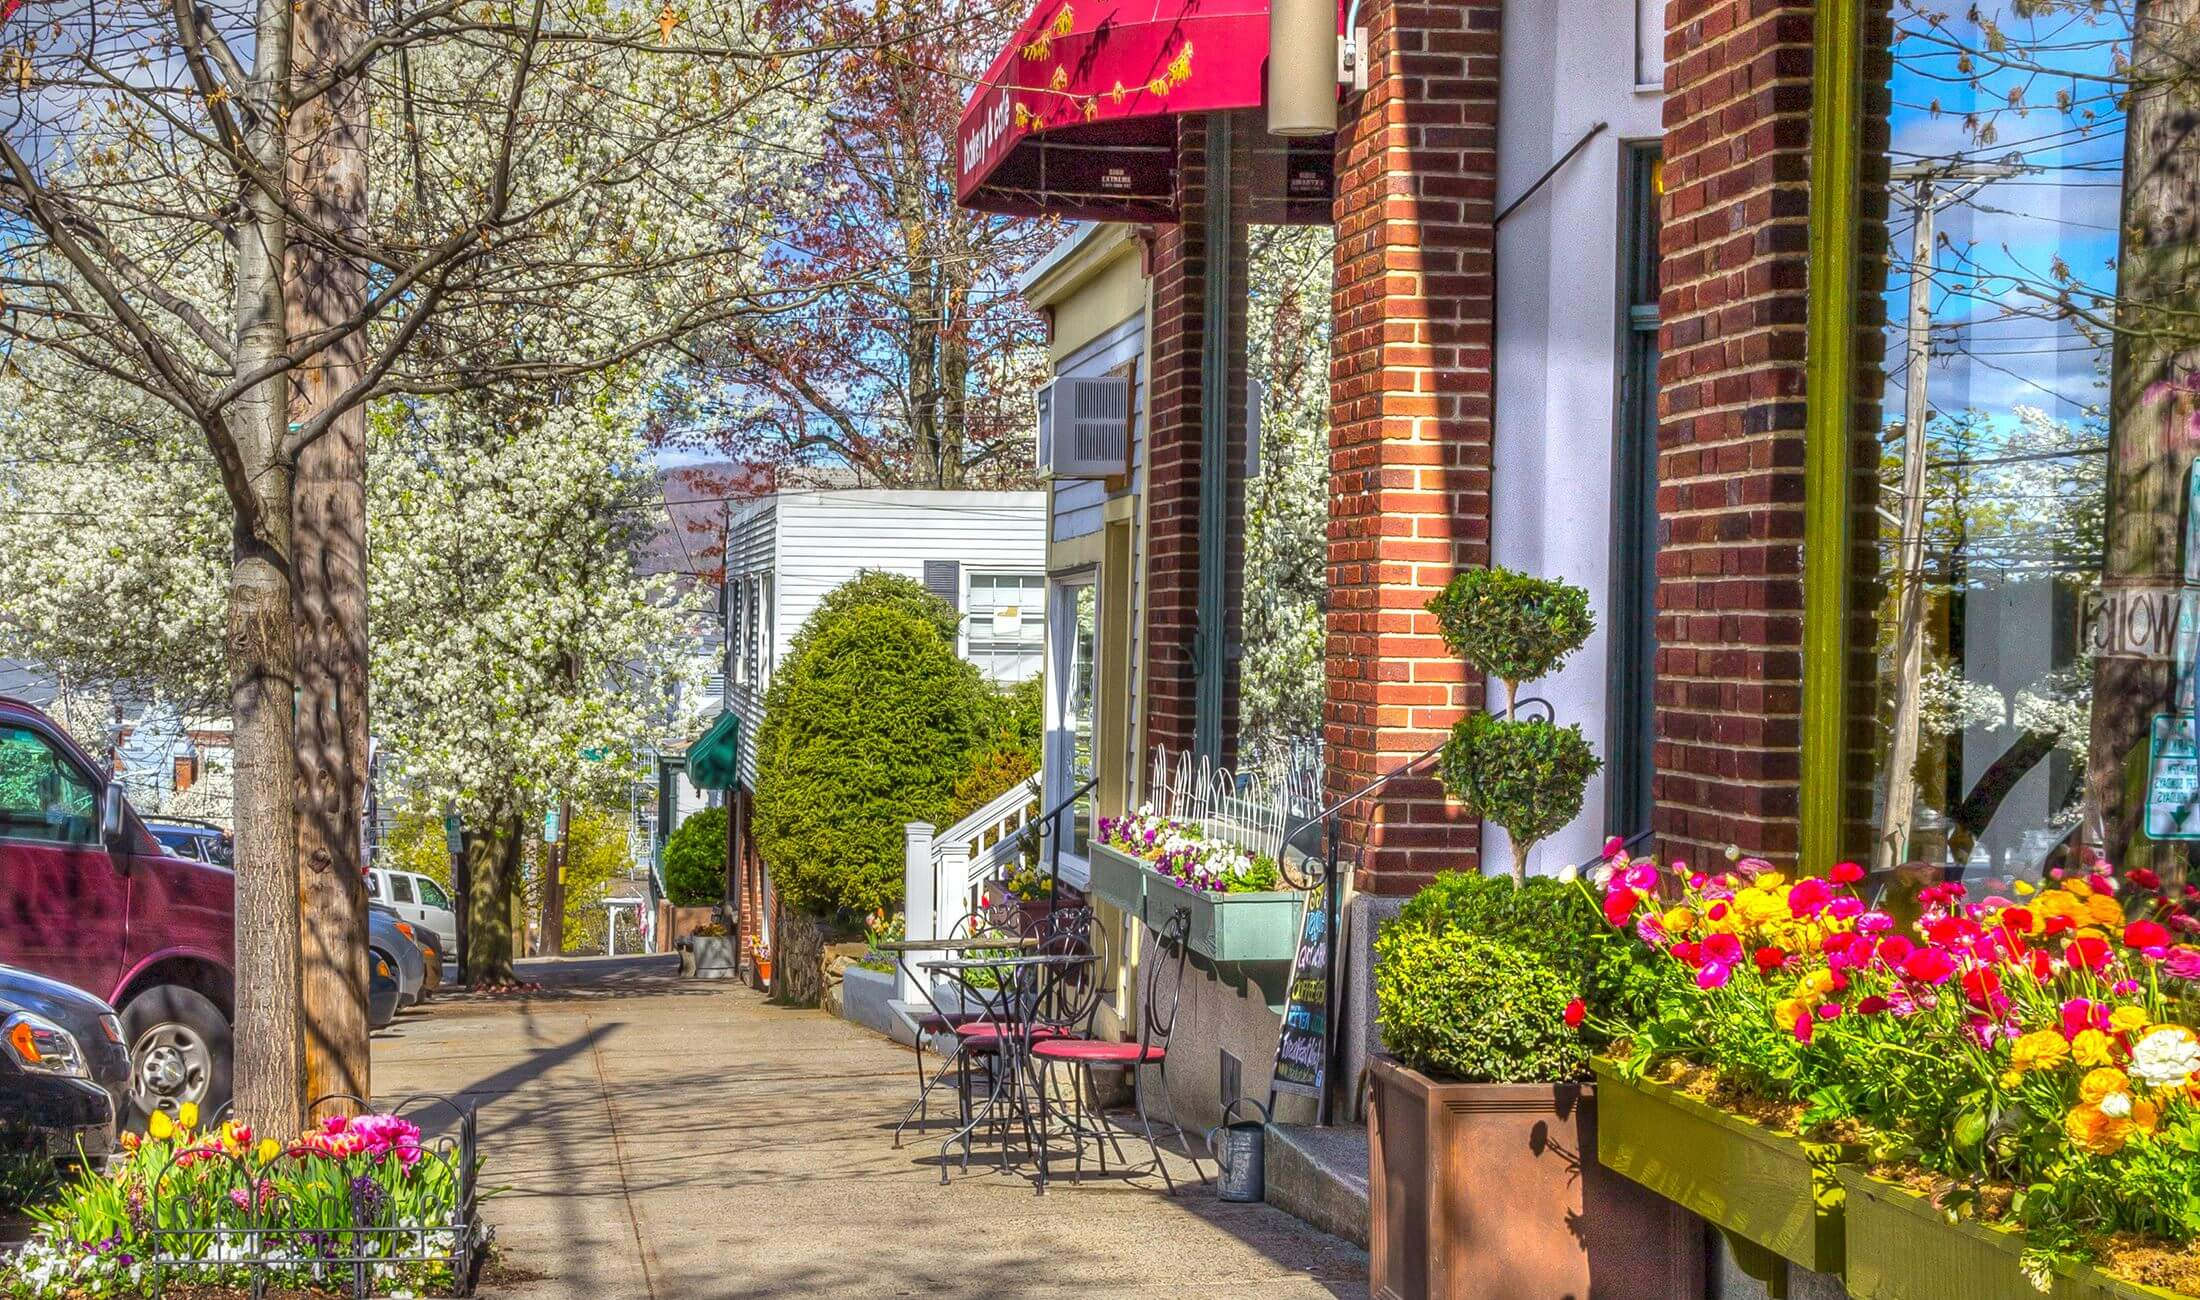 Looking for Walkable in Westchester, and Finding Irvington